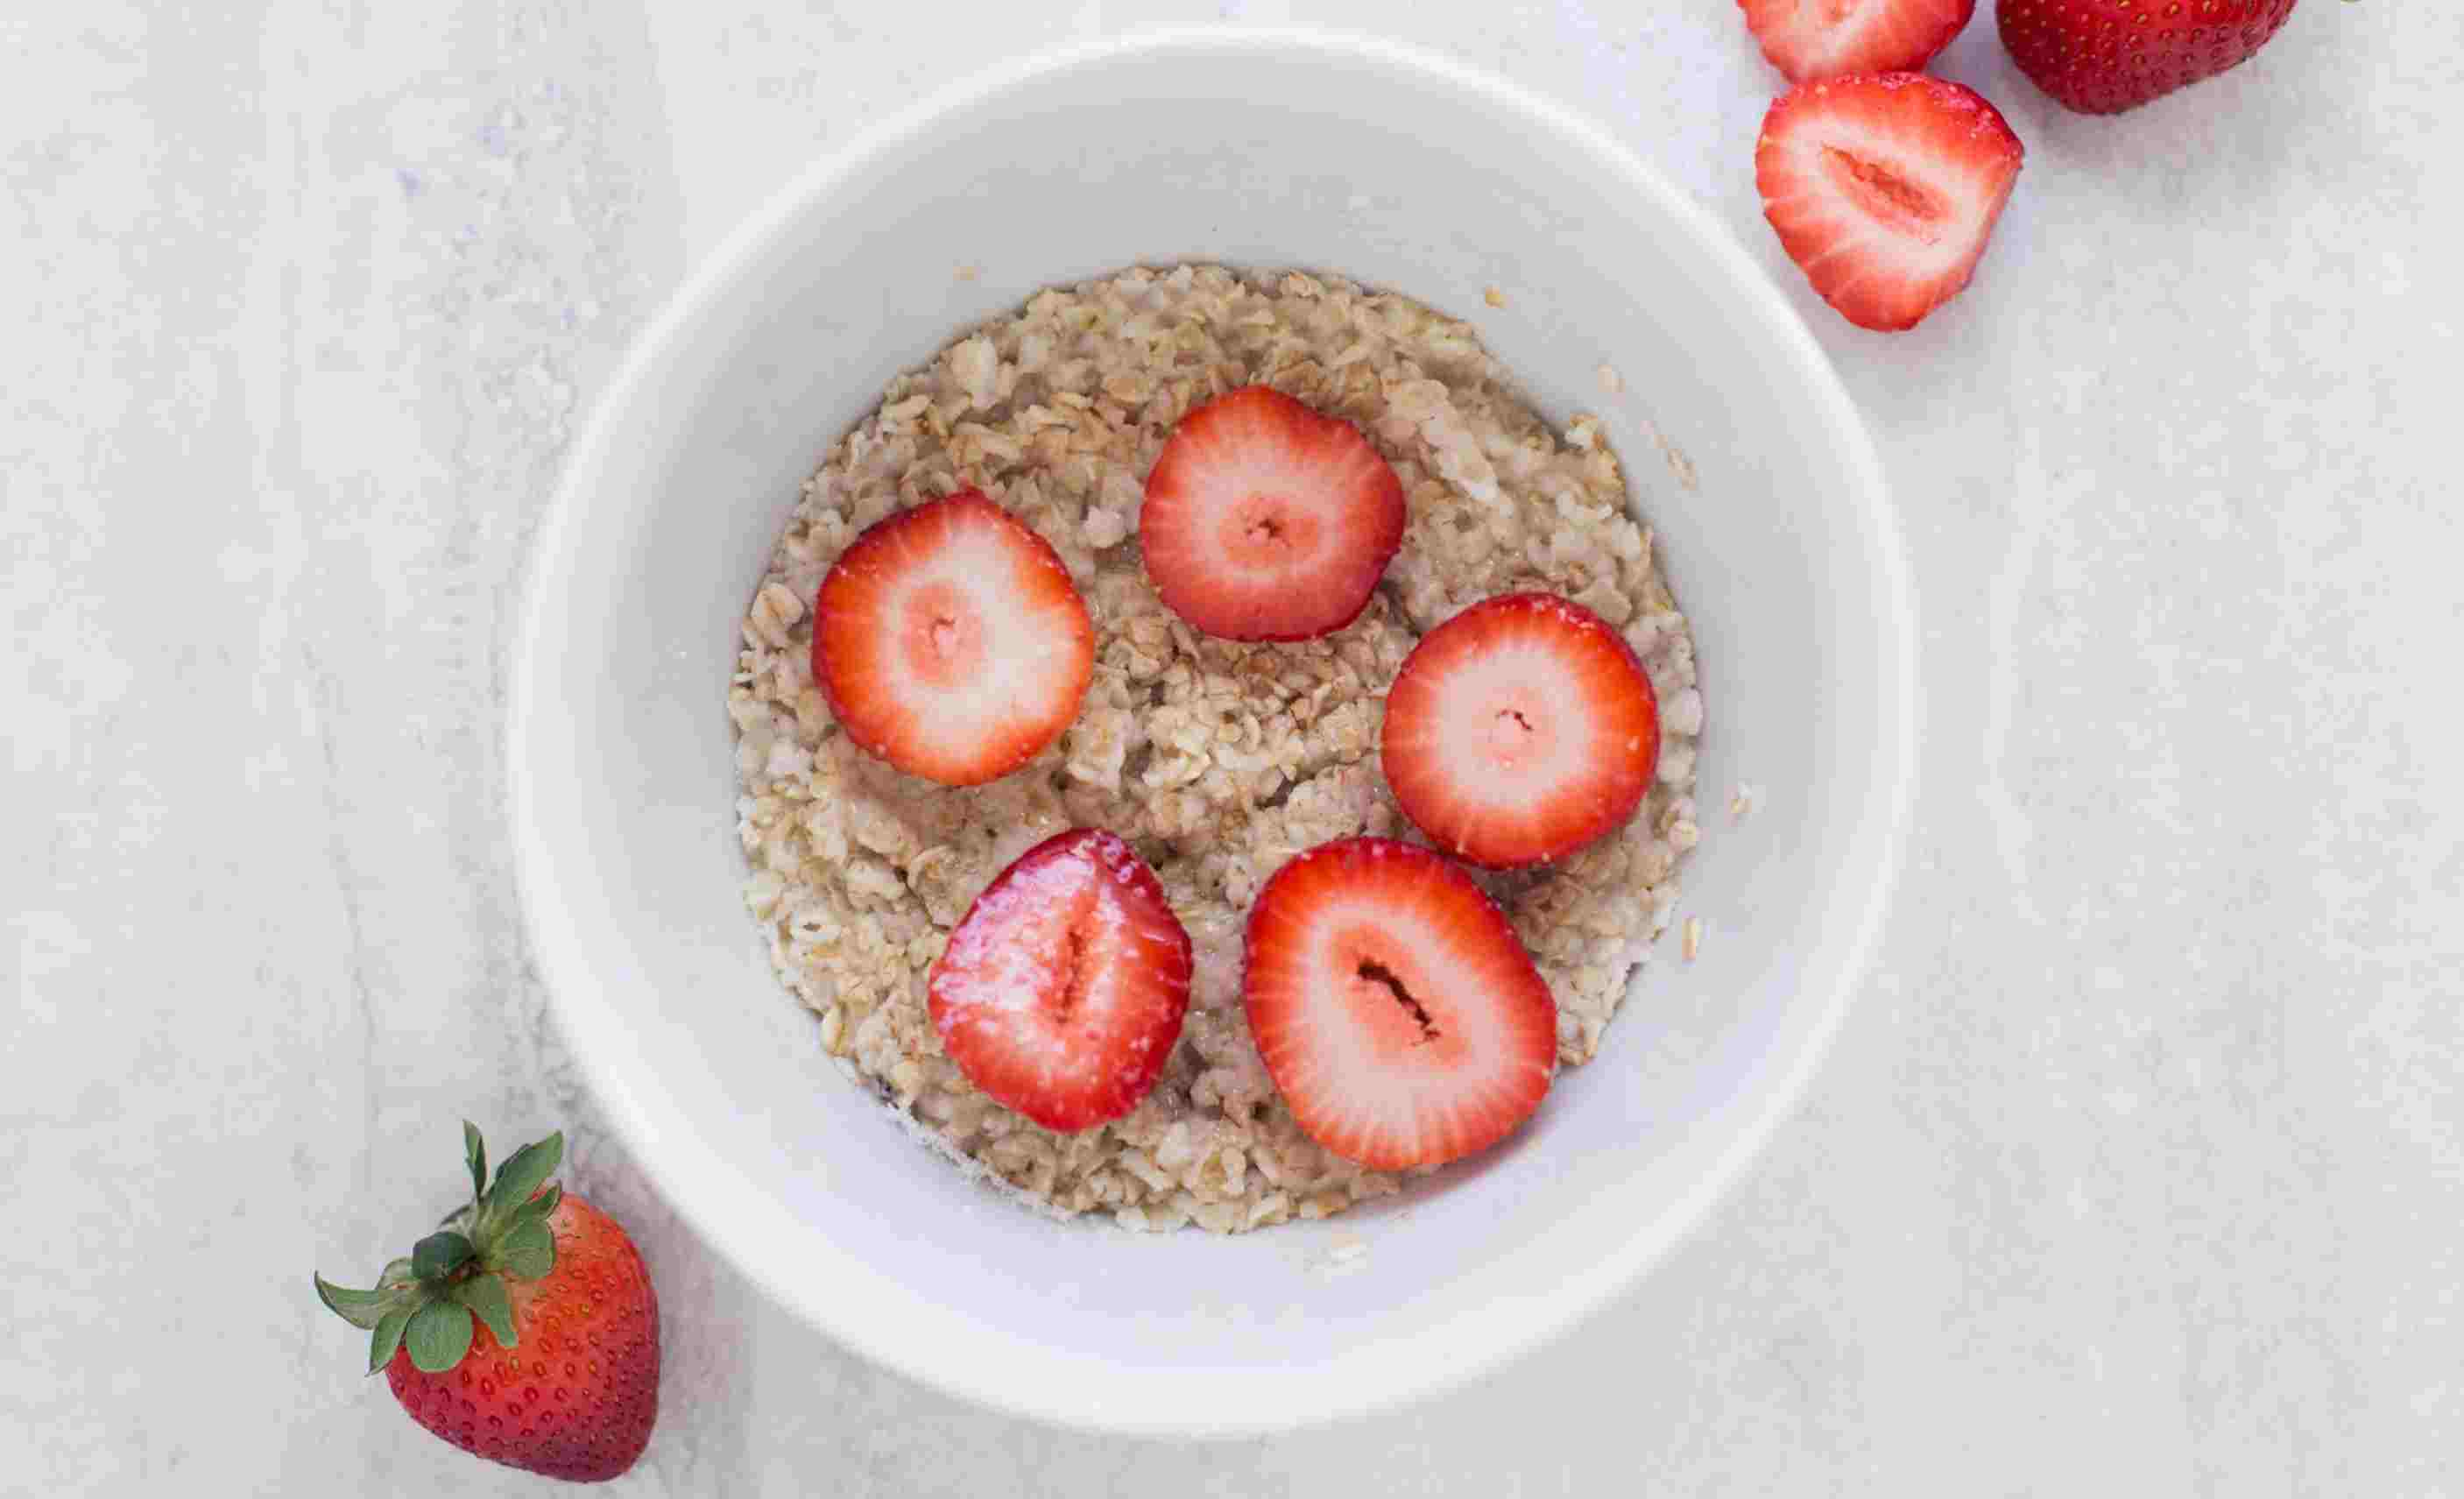 Oatmeal is best natural remedies for eczema